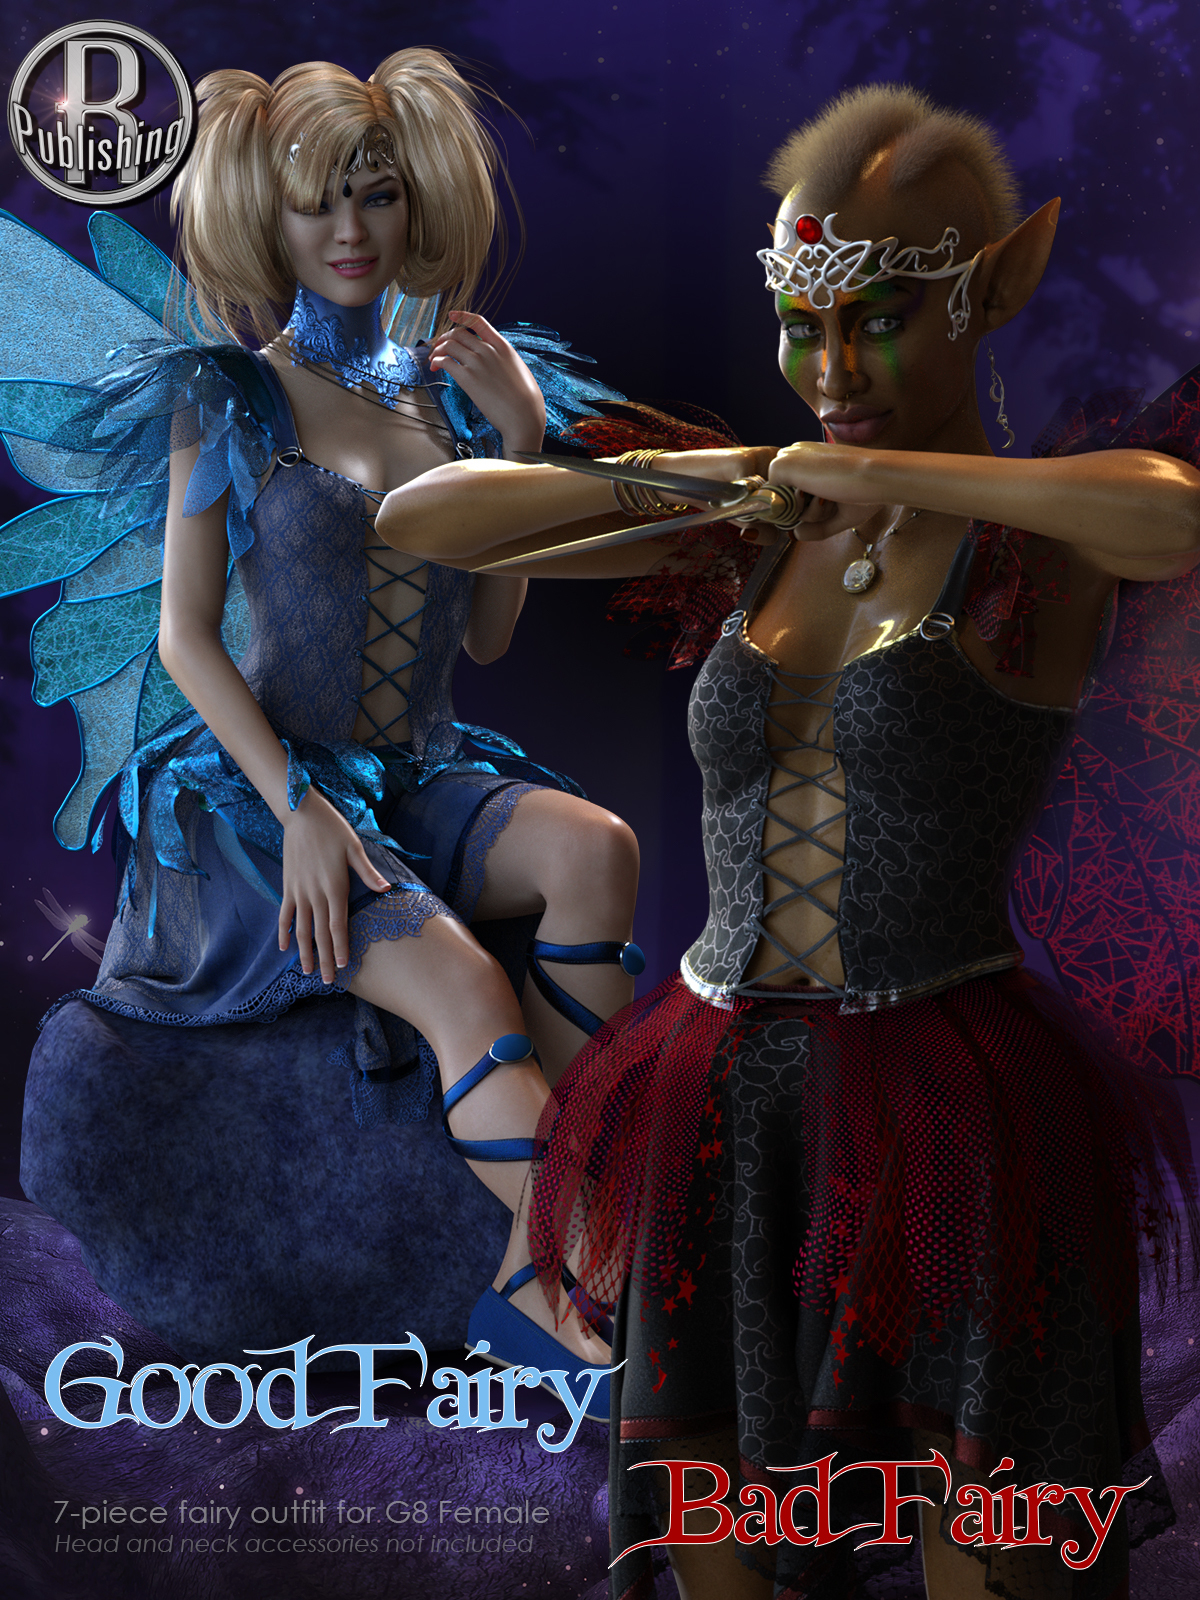 Good Fairy Bad Fairy for G8F by RPublishing